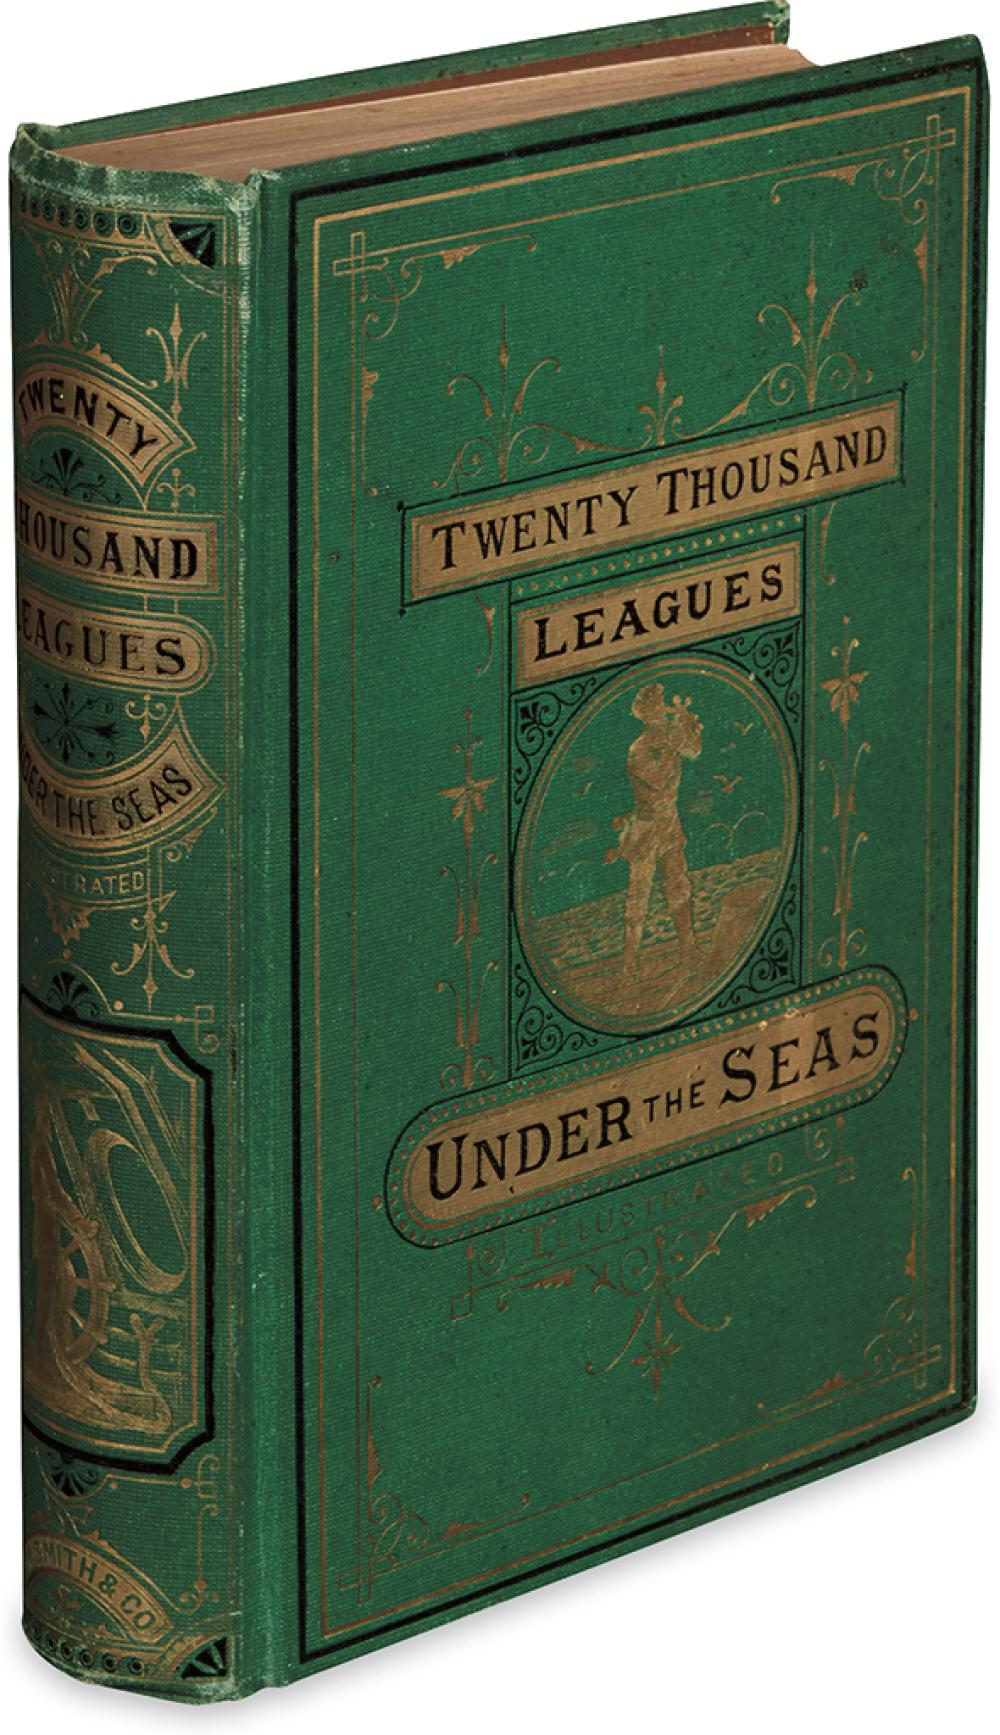 VERNE, JULES. Twenty Thousand Leagues Under the Seas.